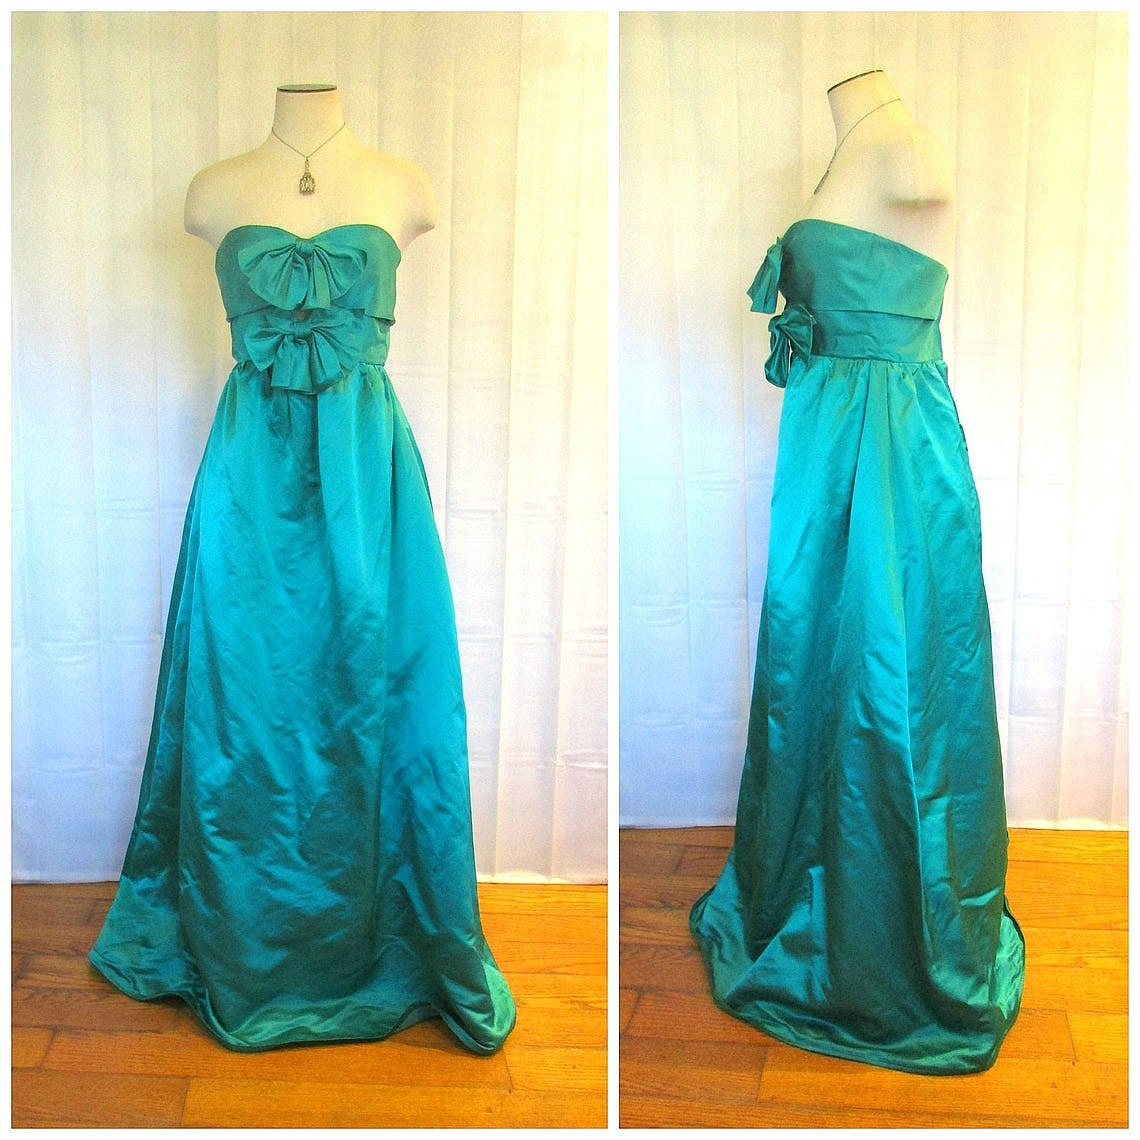 60s -70s Jewelry – Necklaces, Earrings, Rings, Bracelets Vintage Ball Gown 1950S 1960S Strapless Frock Emerald Green Satin Formal Gala Maxi Dress 30 Bust Xs S Princess Party Maxidress With Bows $240.00 AT vintagedancer.com